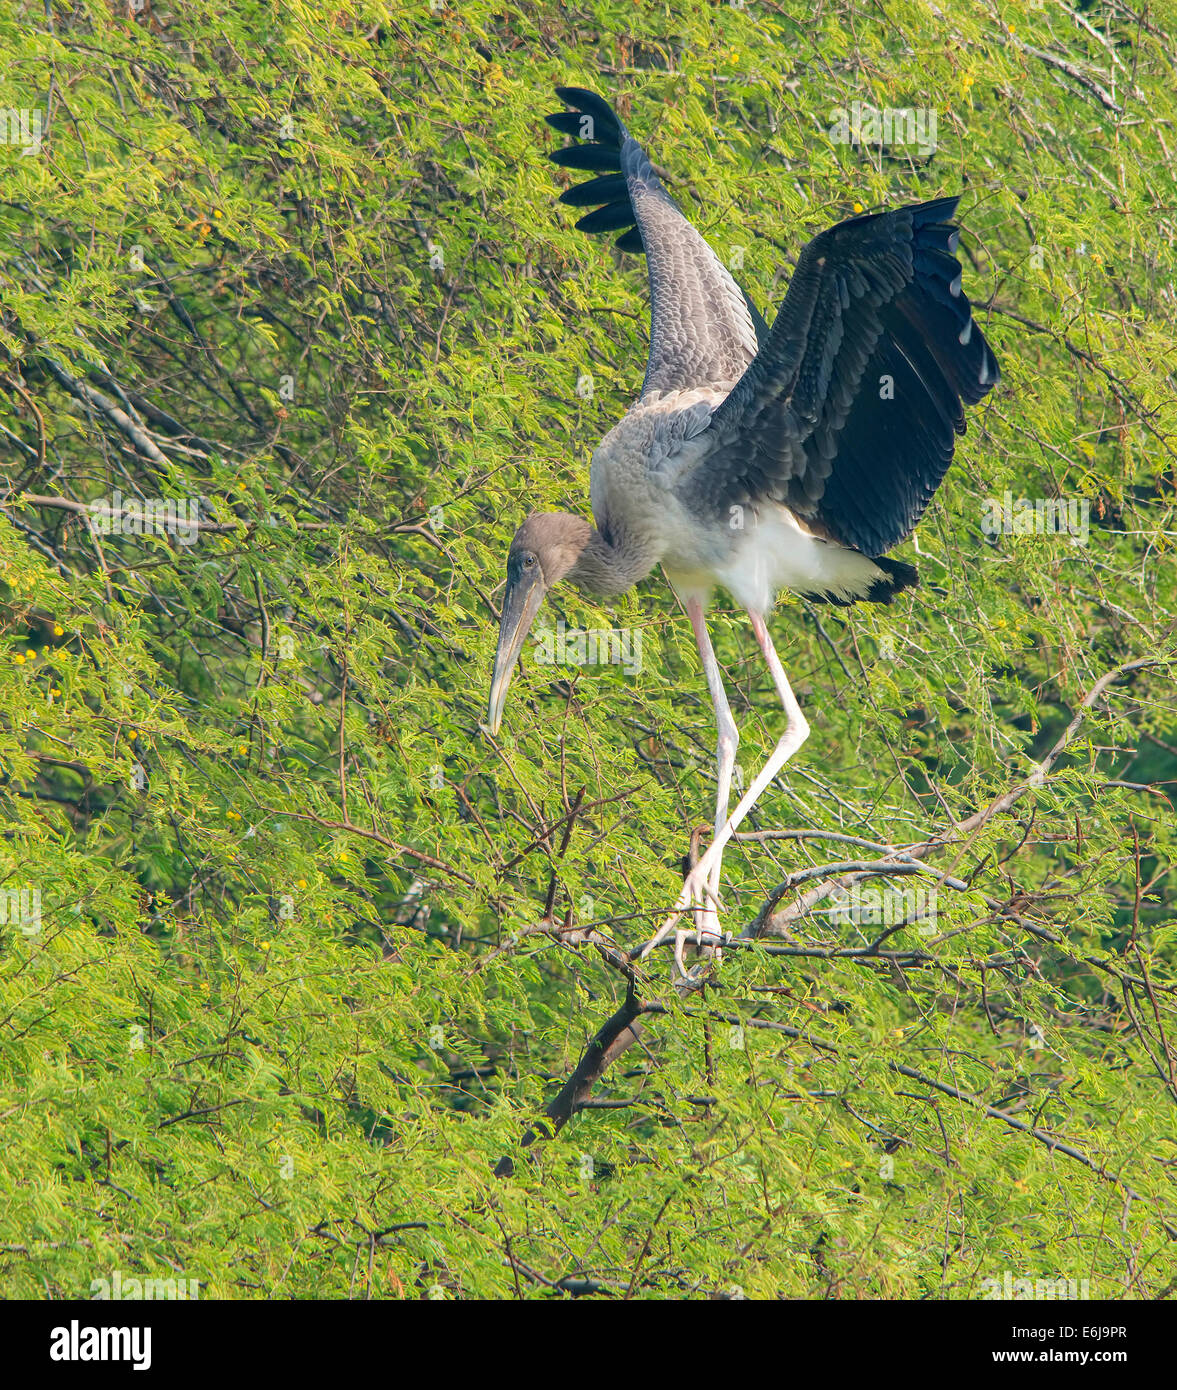 A juvenile painted stork with expanded wings - Stock Image